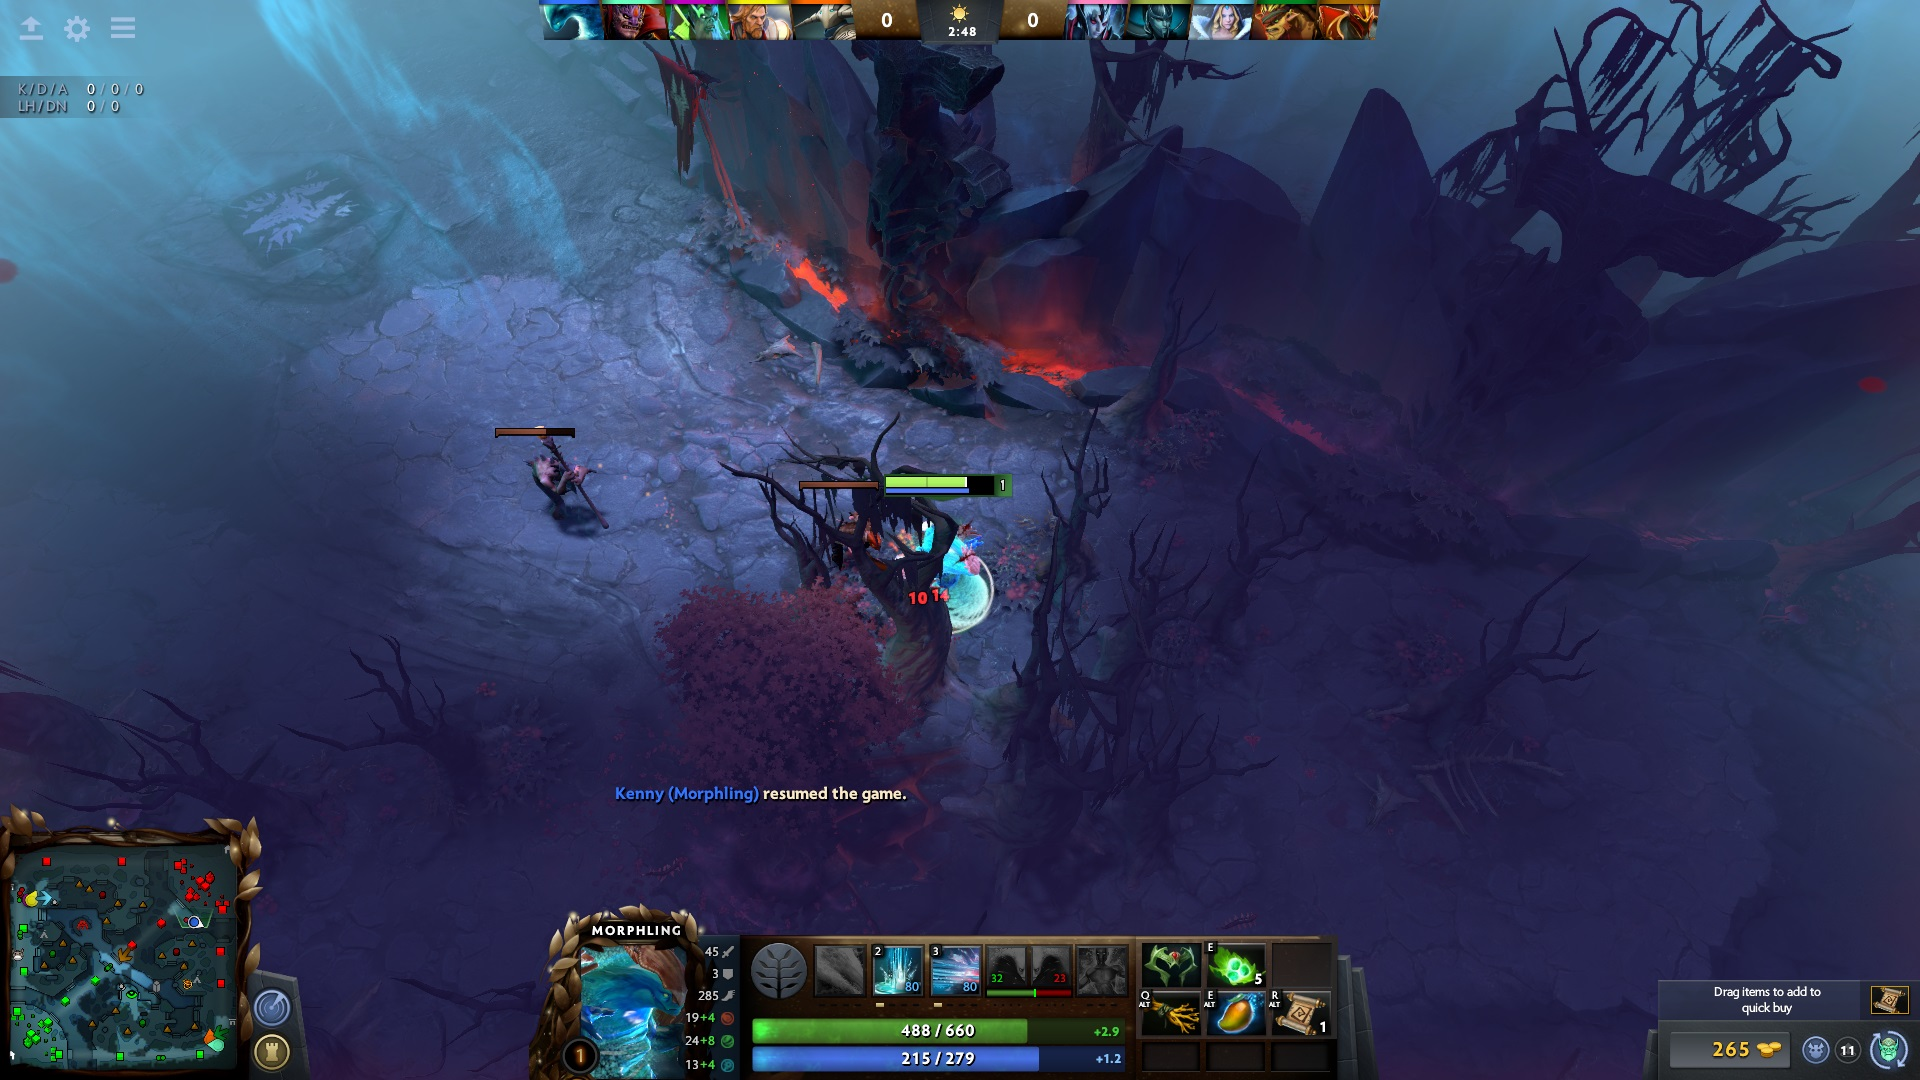 Lava vents on Dire's side of the map.